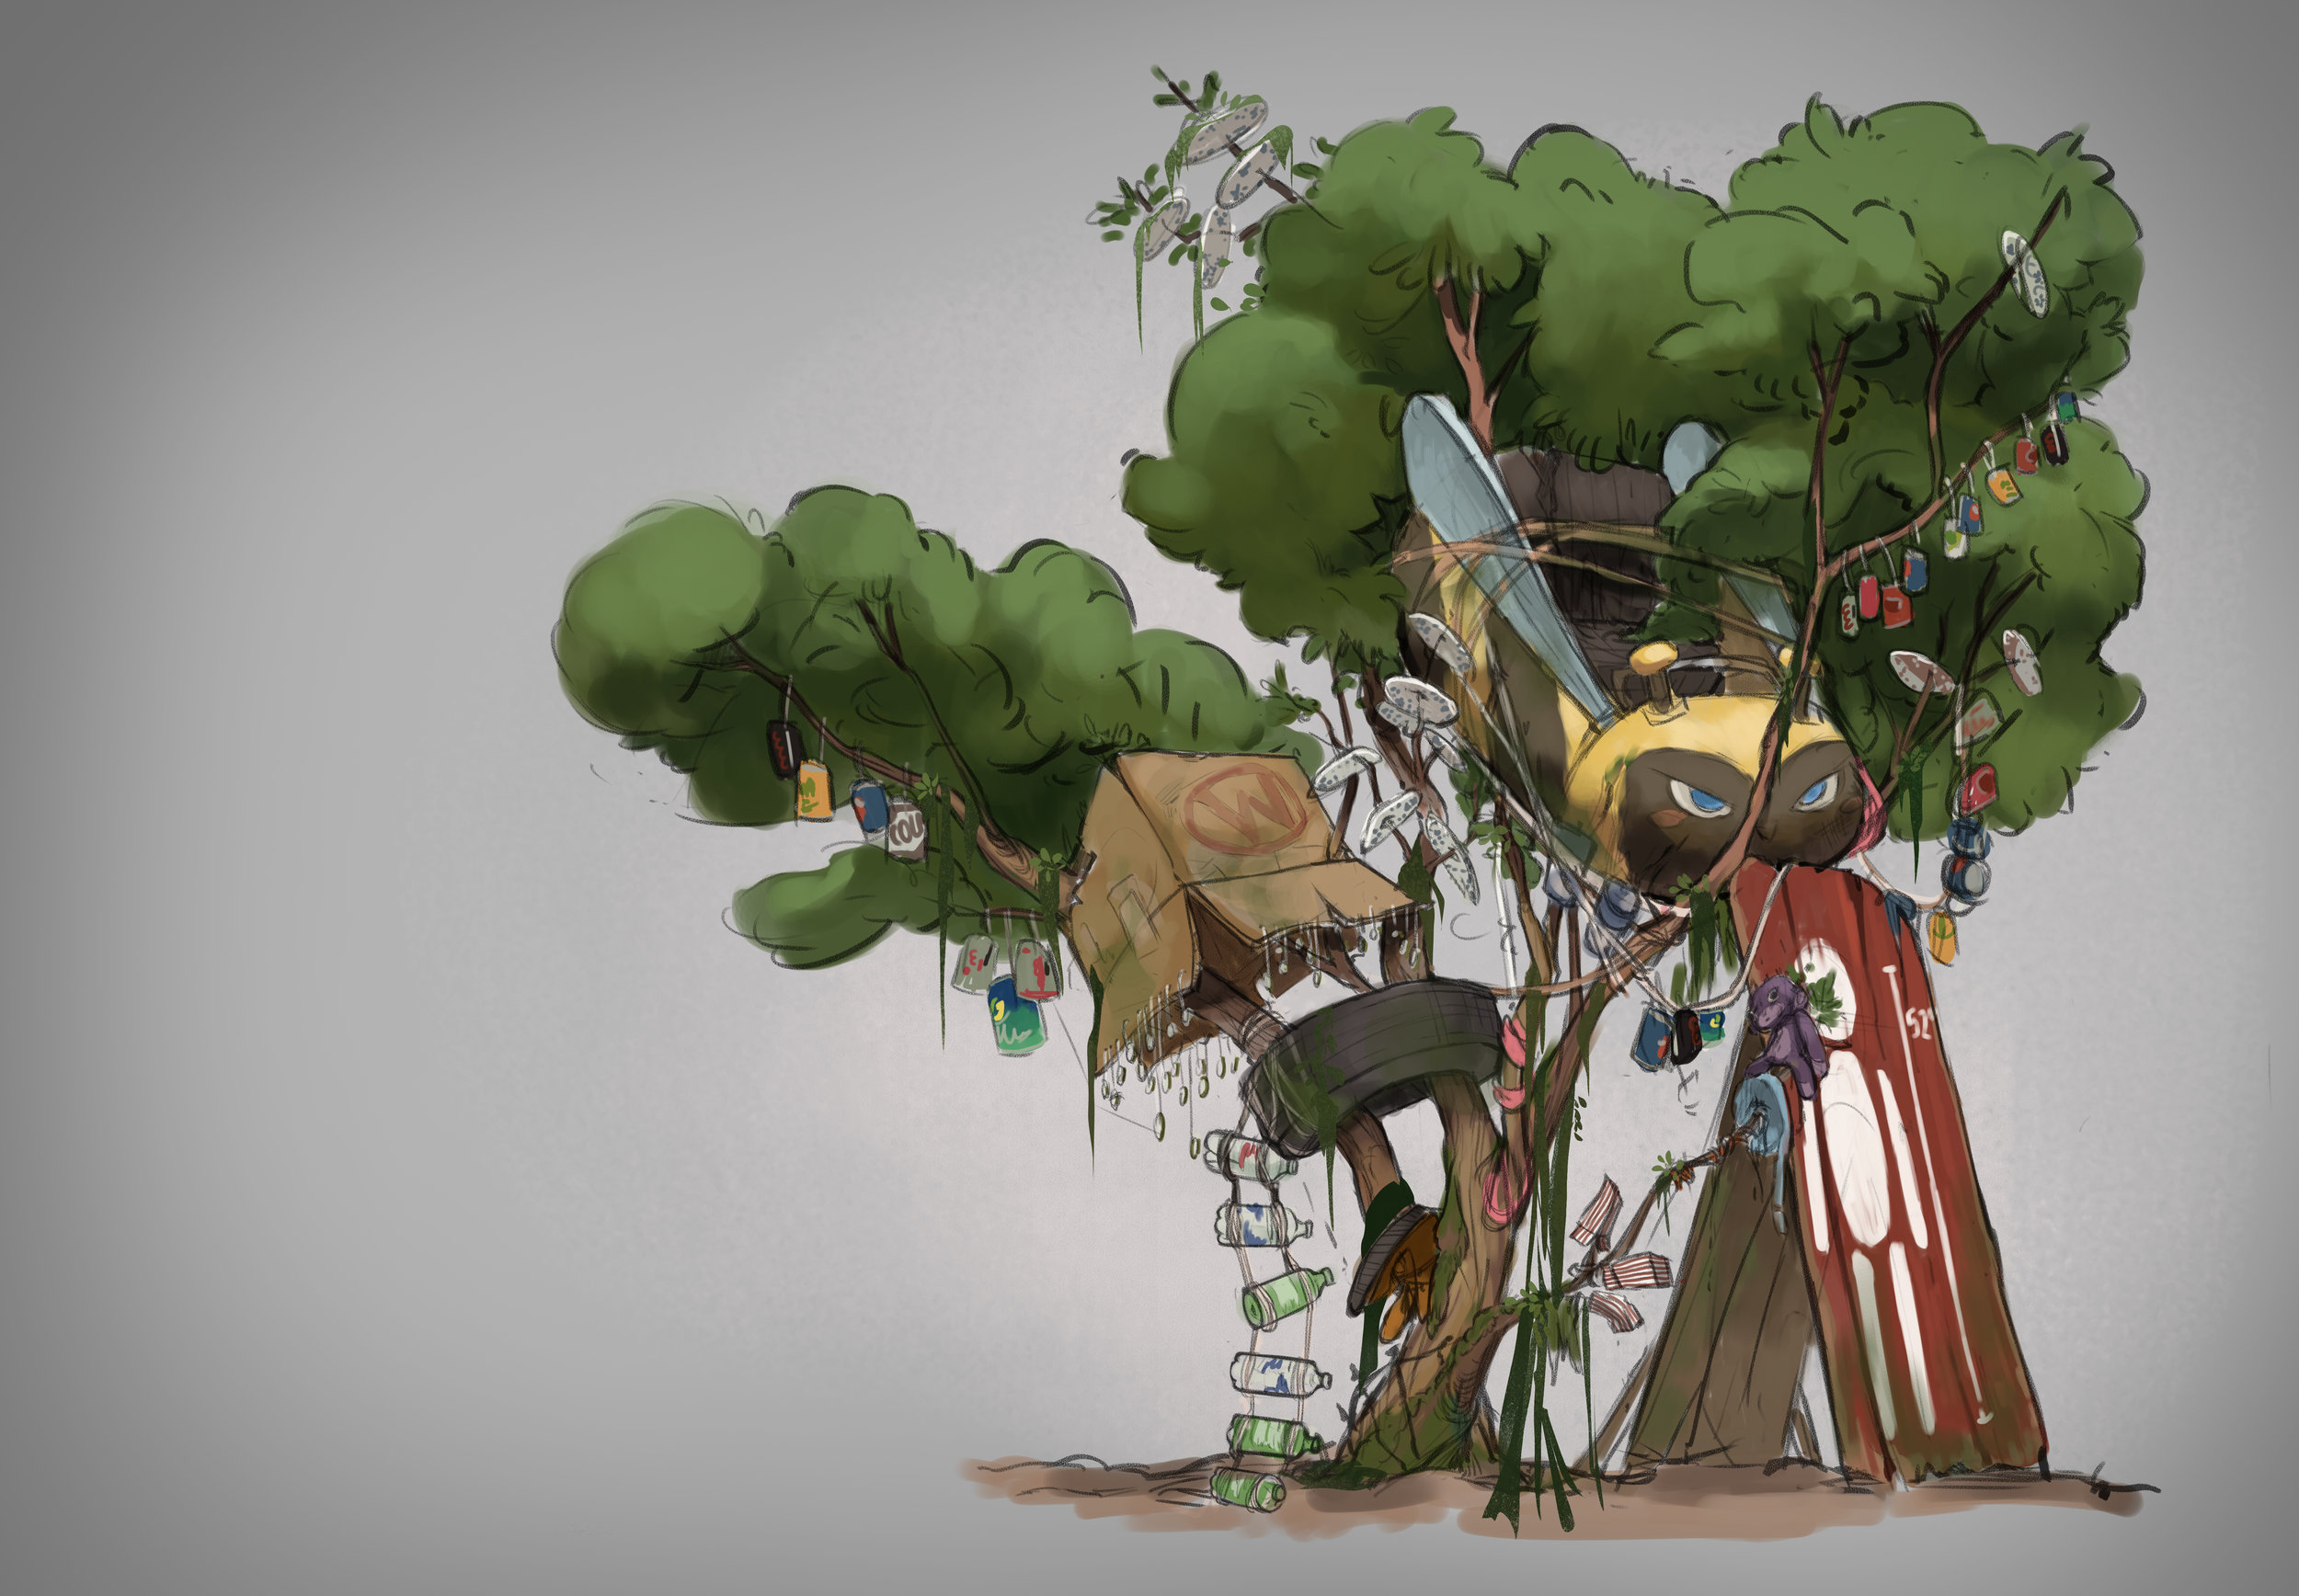 """This was a piece from the set above. It was meant to be a home for a raccoon forager character named """"Fidget."""" The thinking was that she gathered various items throughout the amusement park to build and personalize her home in a tree."""